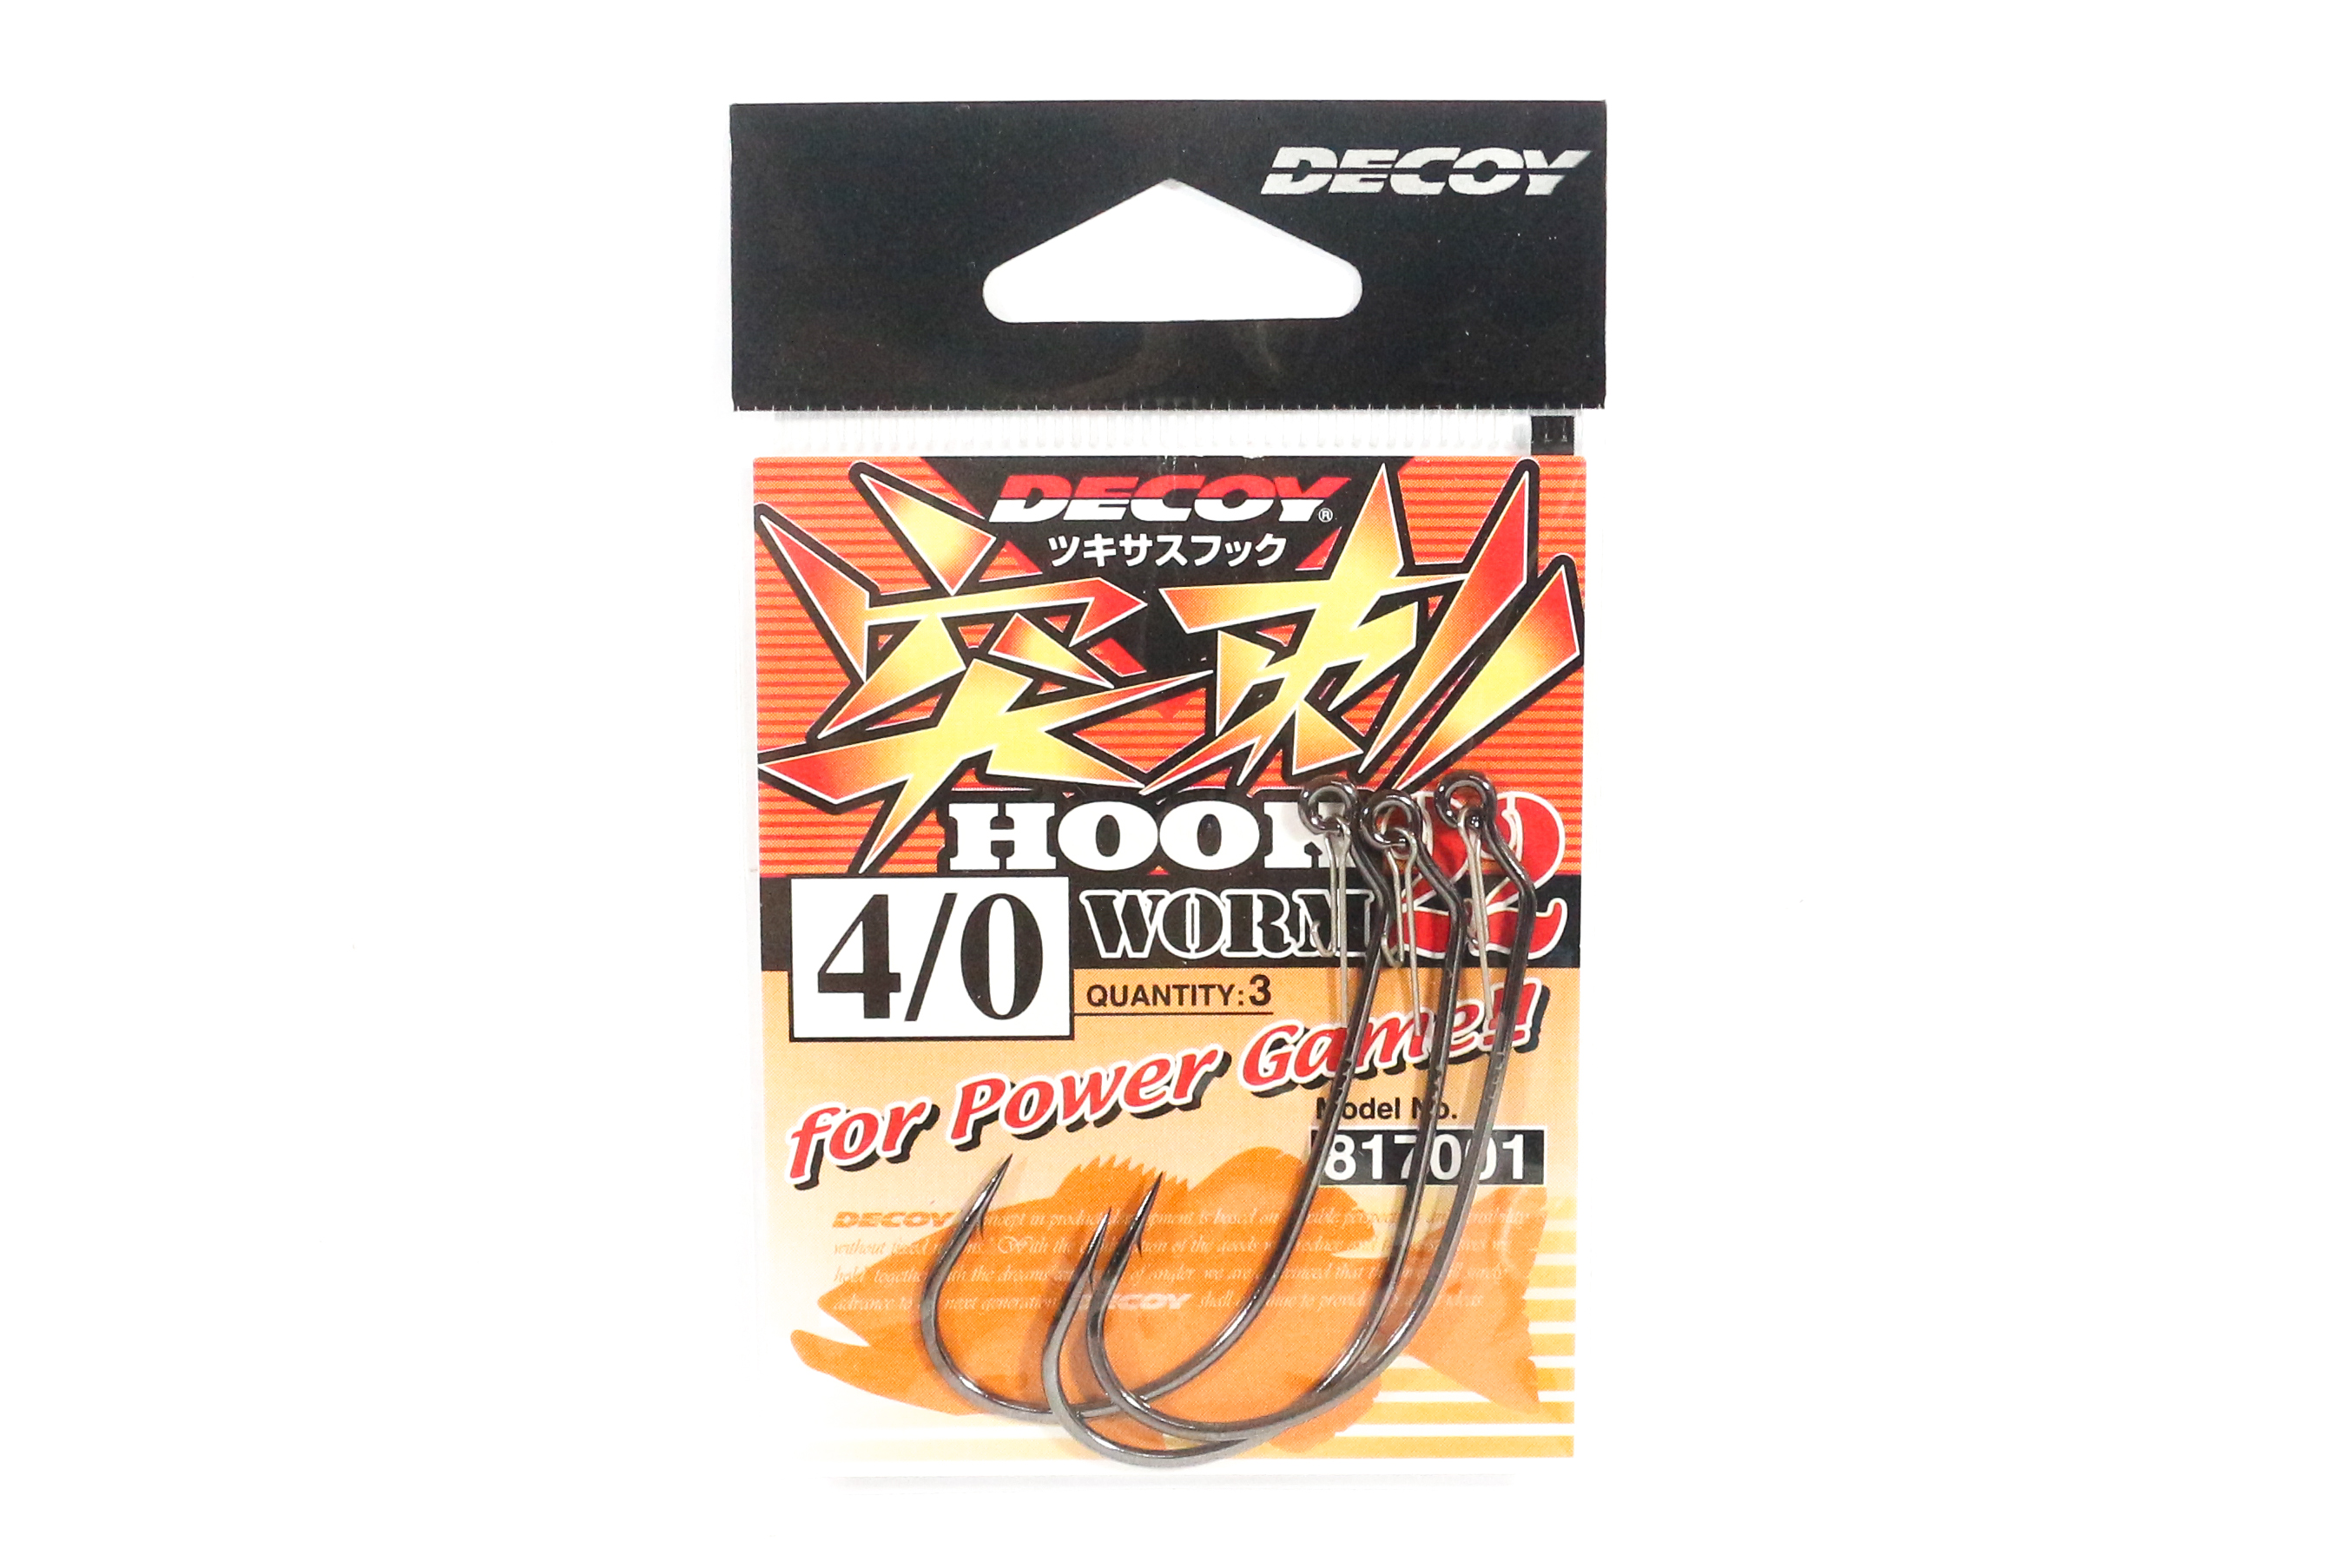 Decoy Worm 22 Power Game Worm Hook with Keeper Size 4/0 (7001)